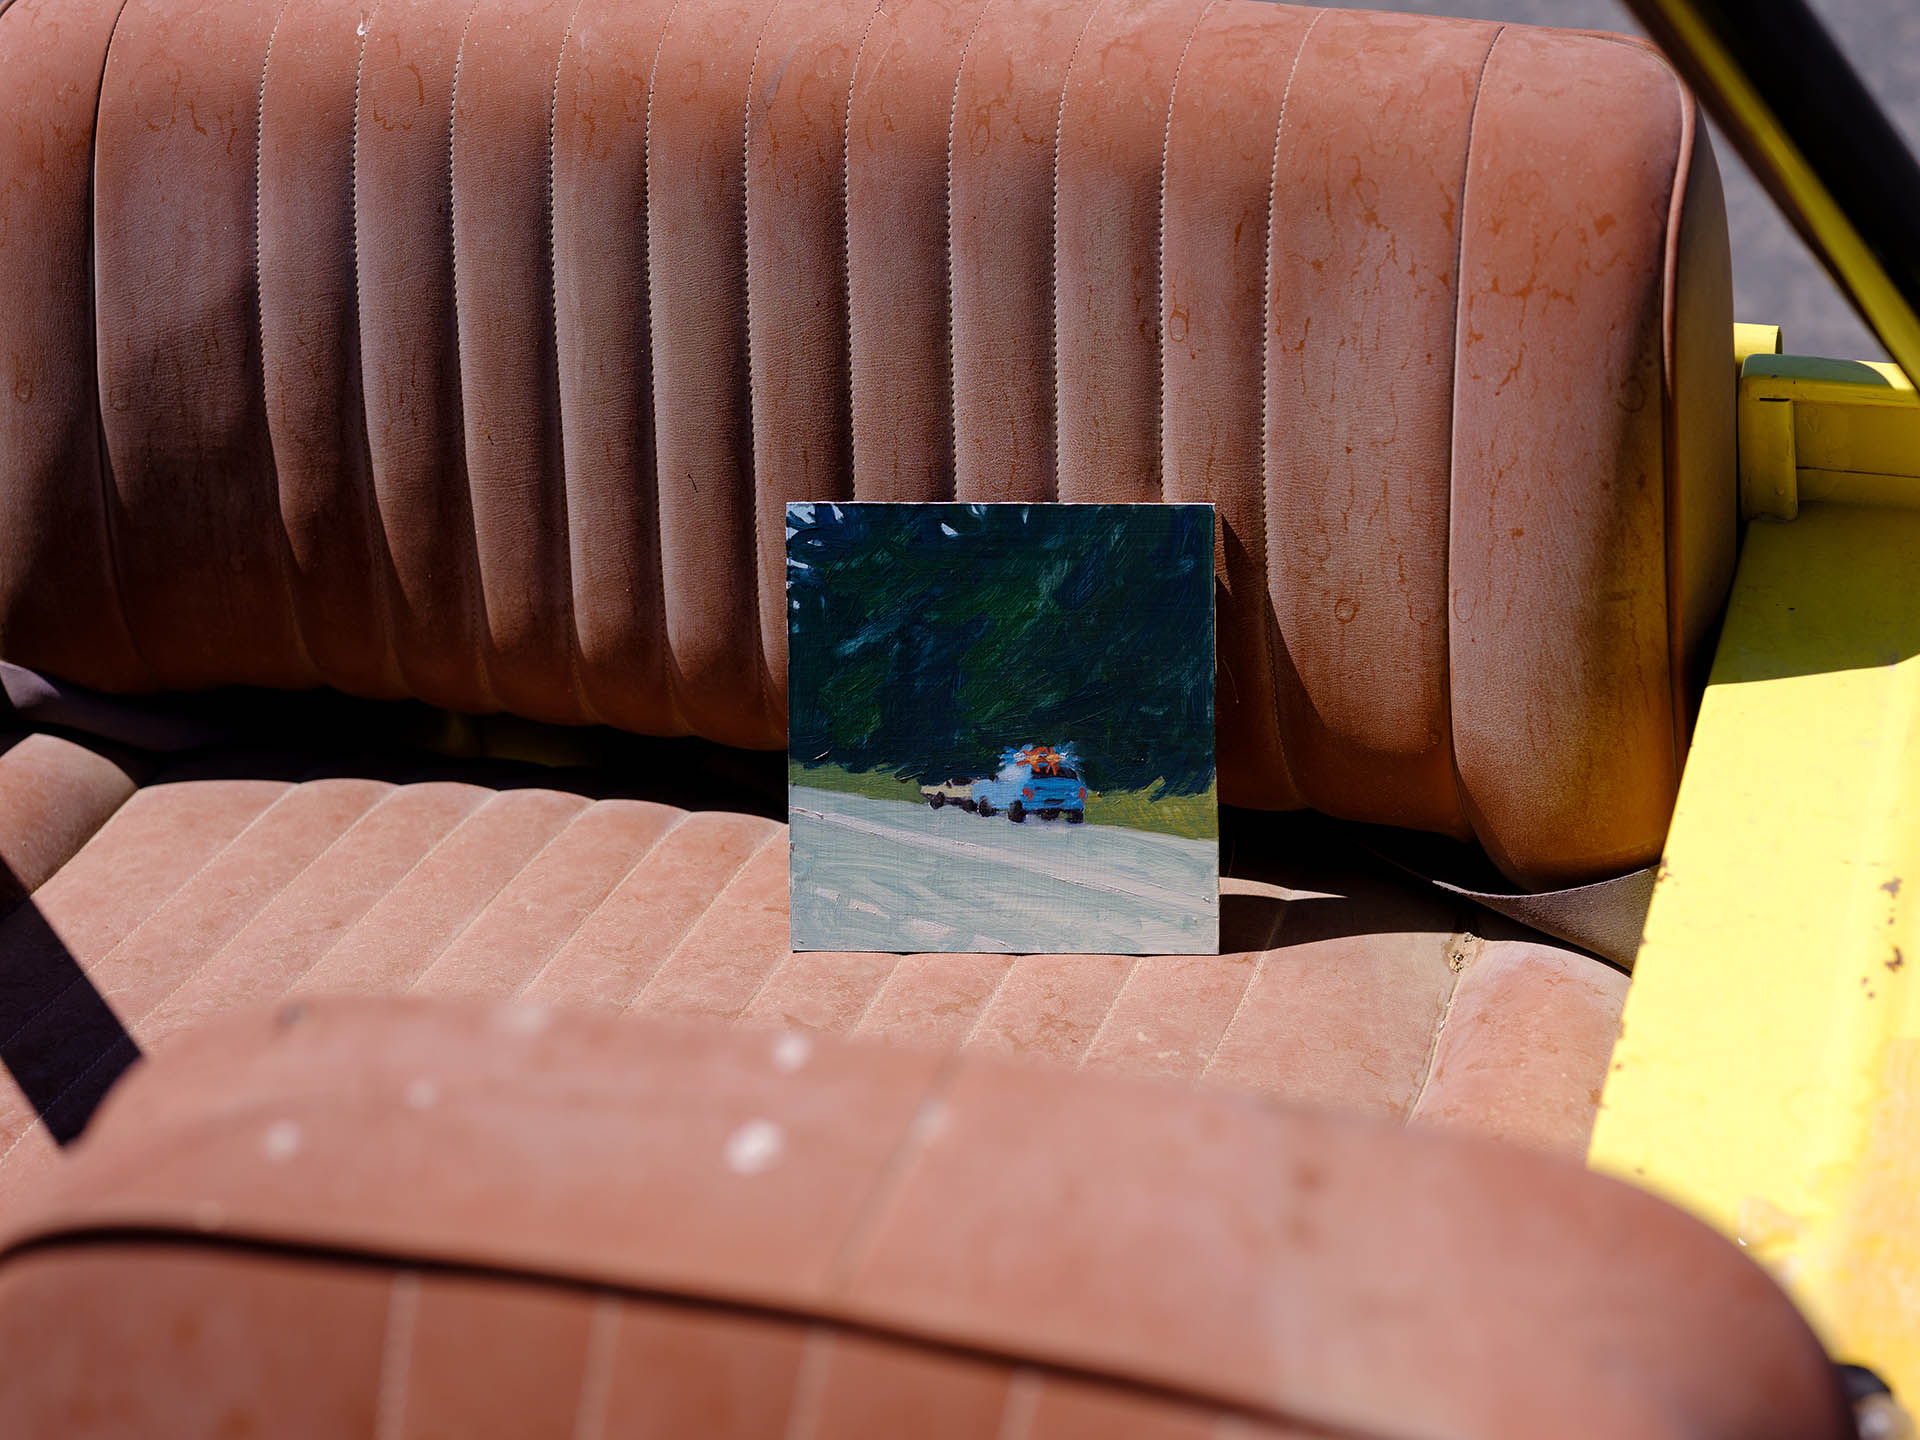 An installation view of Claudia Keep's painting, Staties, captured by photographer Tag Christof in the Western United States in 2021 for MARCH. The image shows a painting sitting in the backseat of a car.